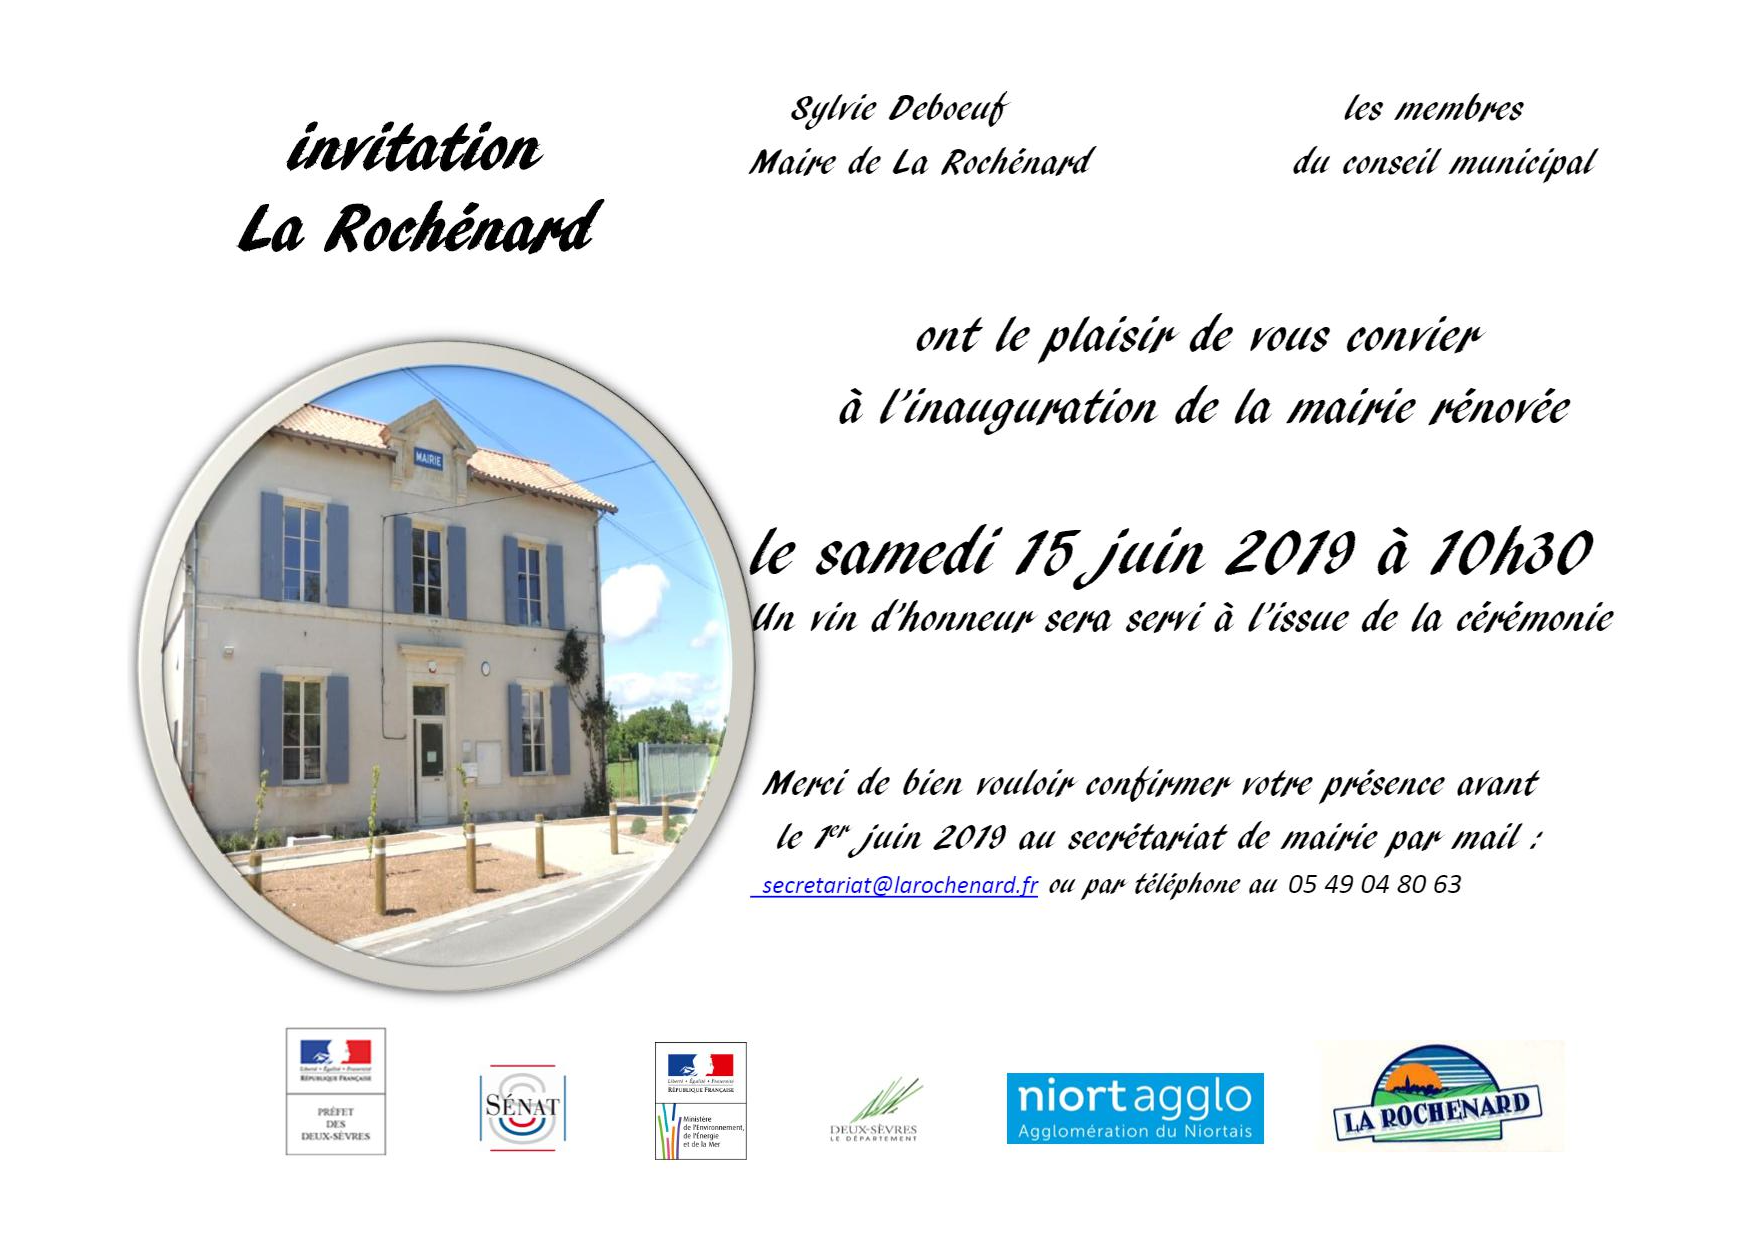 InvitationMairie